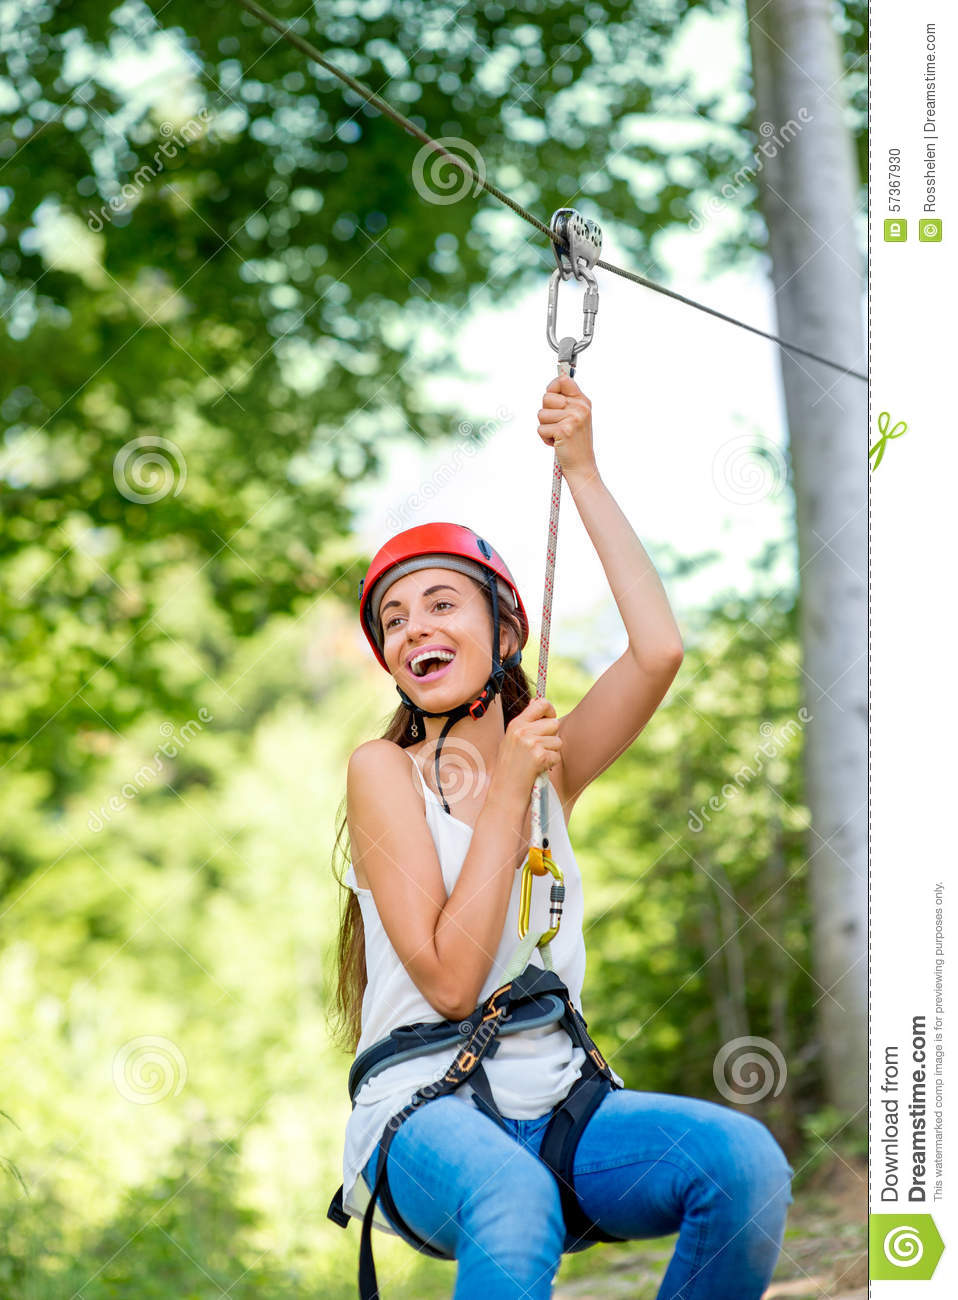 woman riding on a zip line royalty